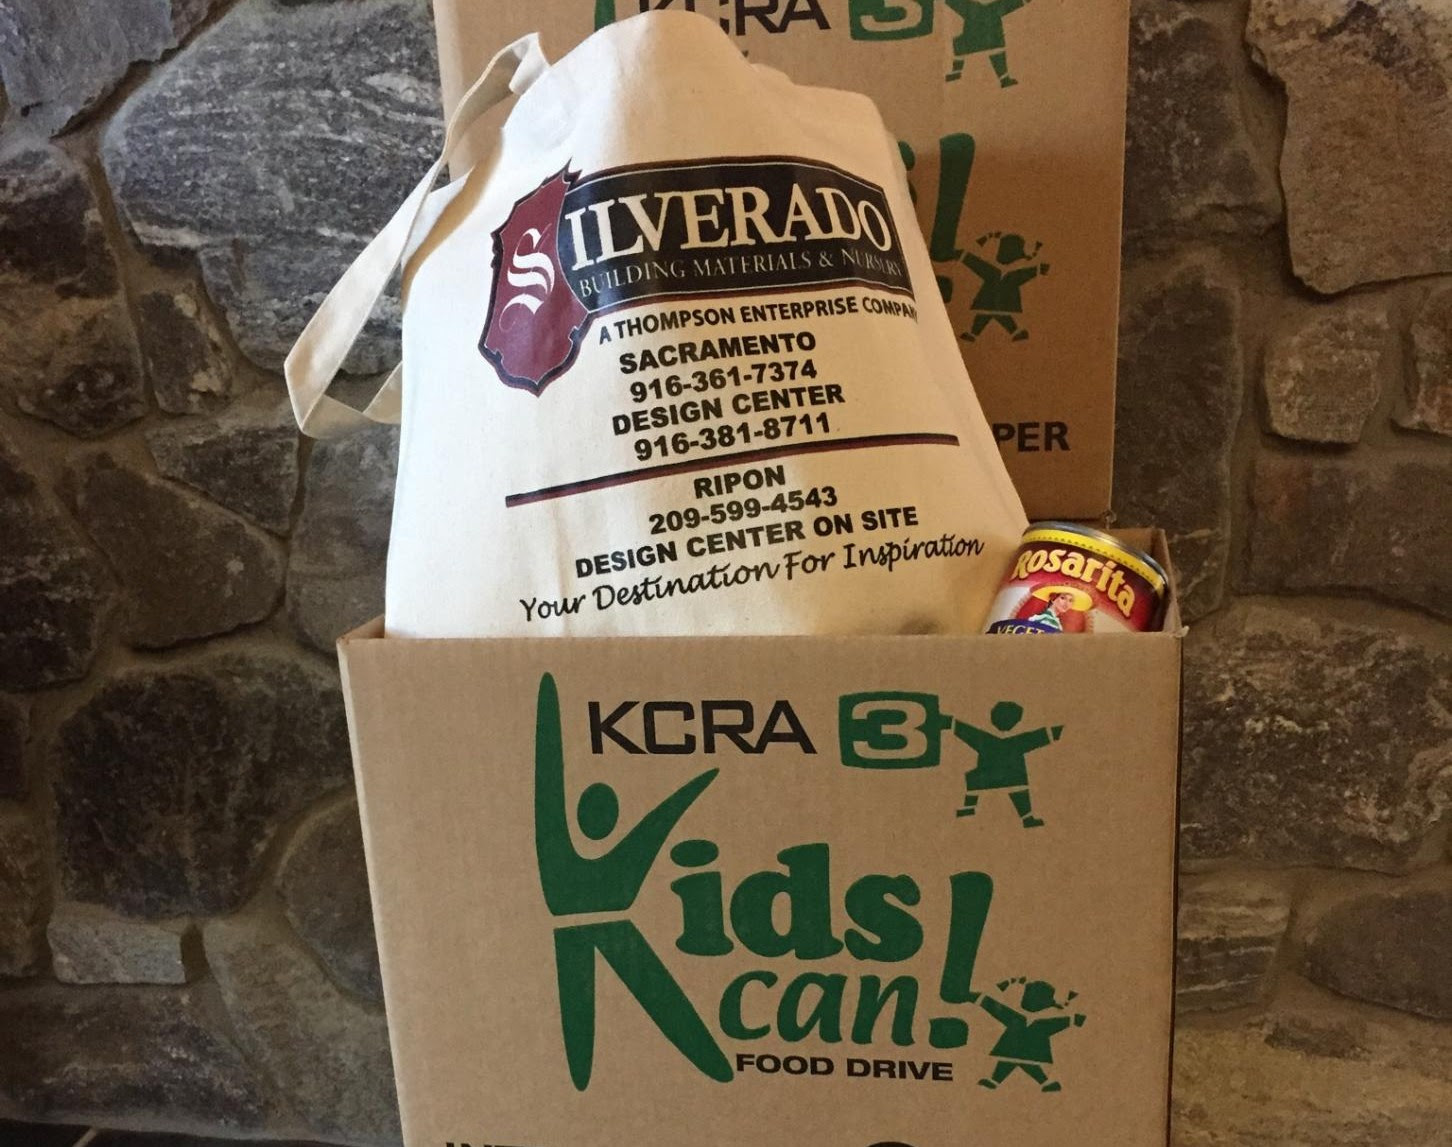 Silverado Building Materials Kids Can Can Food Drive With Kcra 3